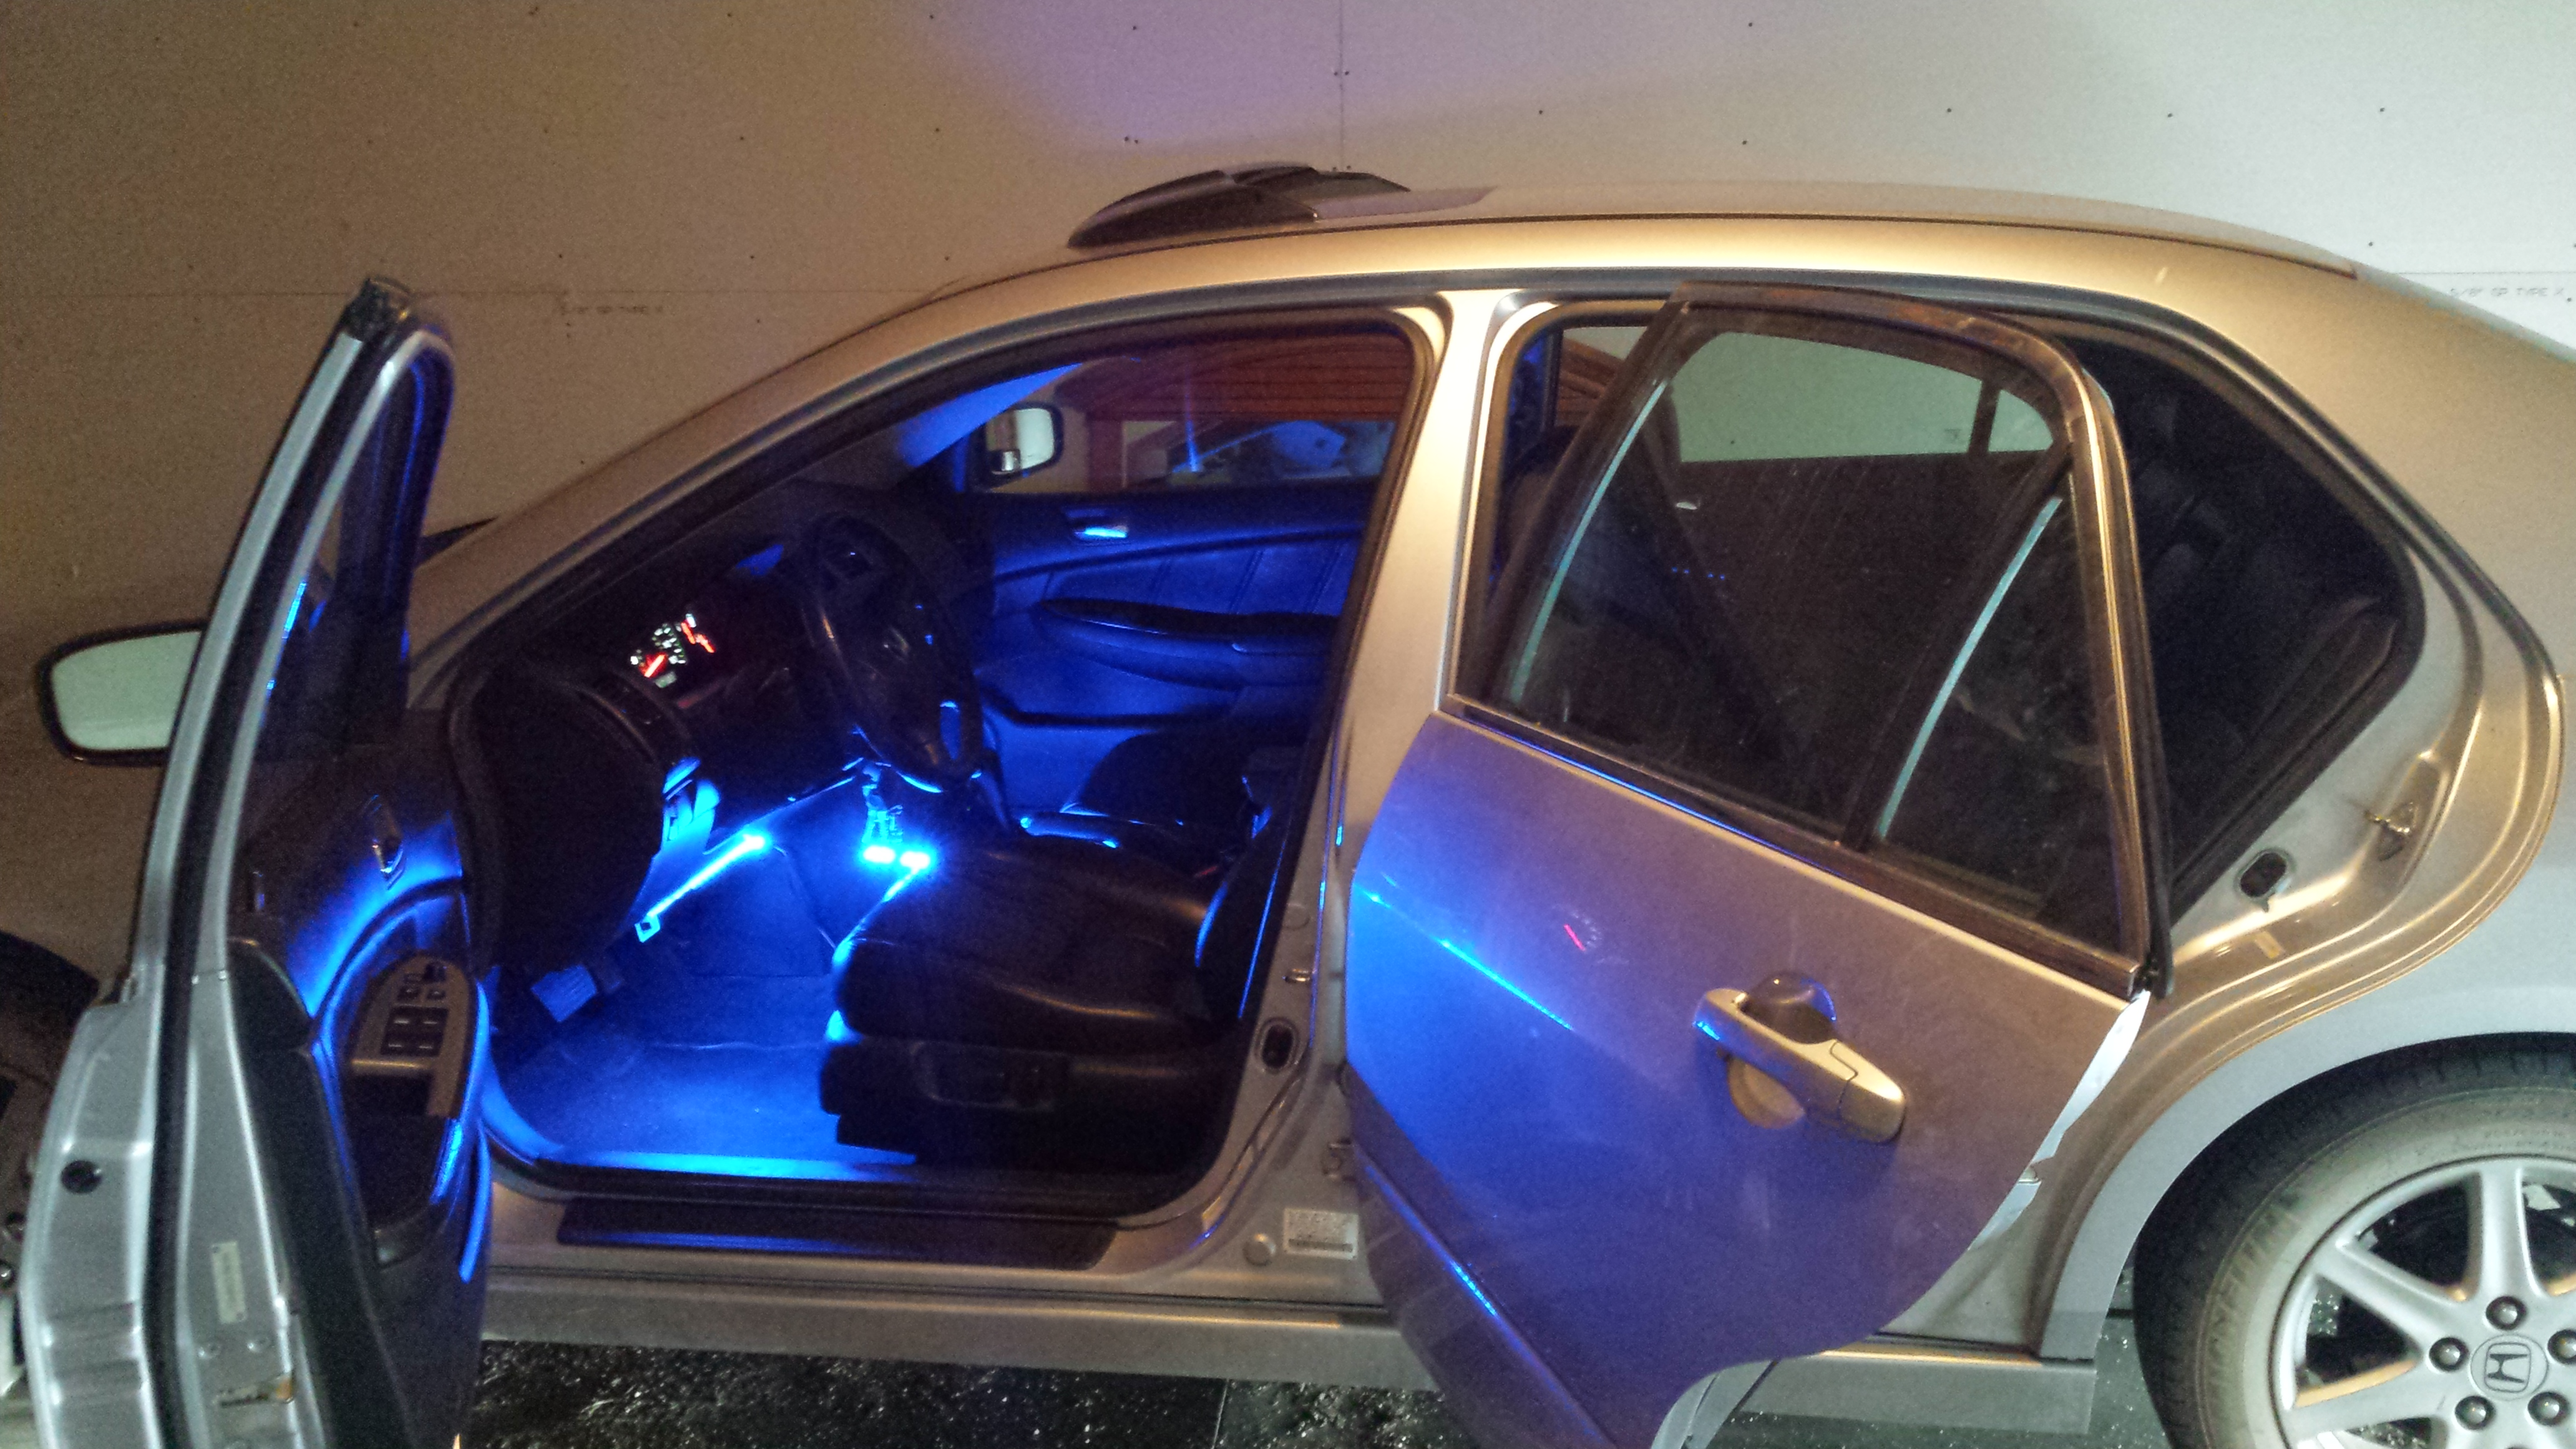 Picture of Car Interior LEDs